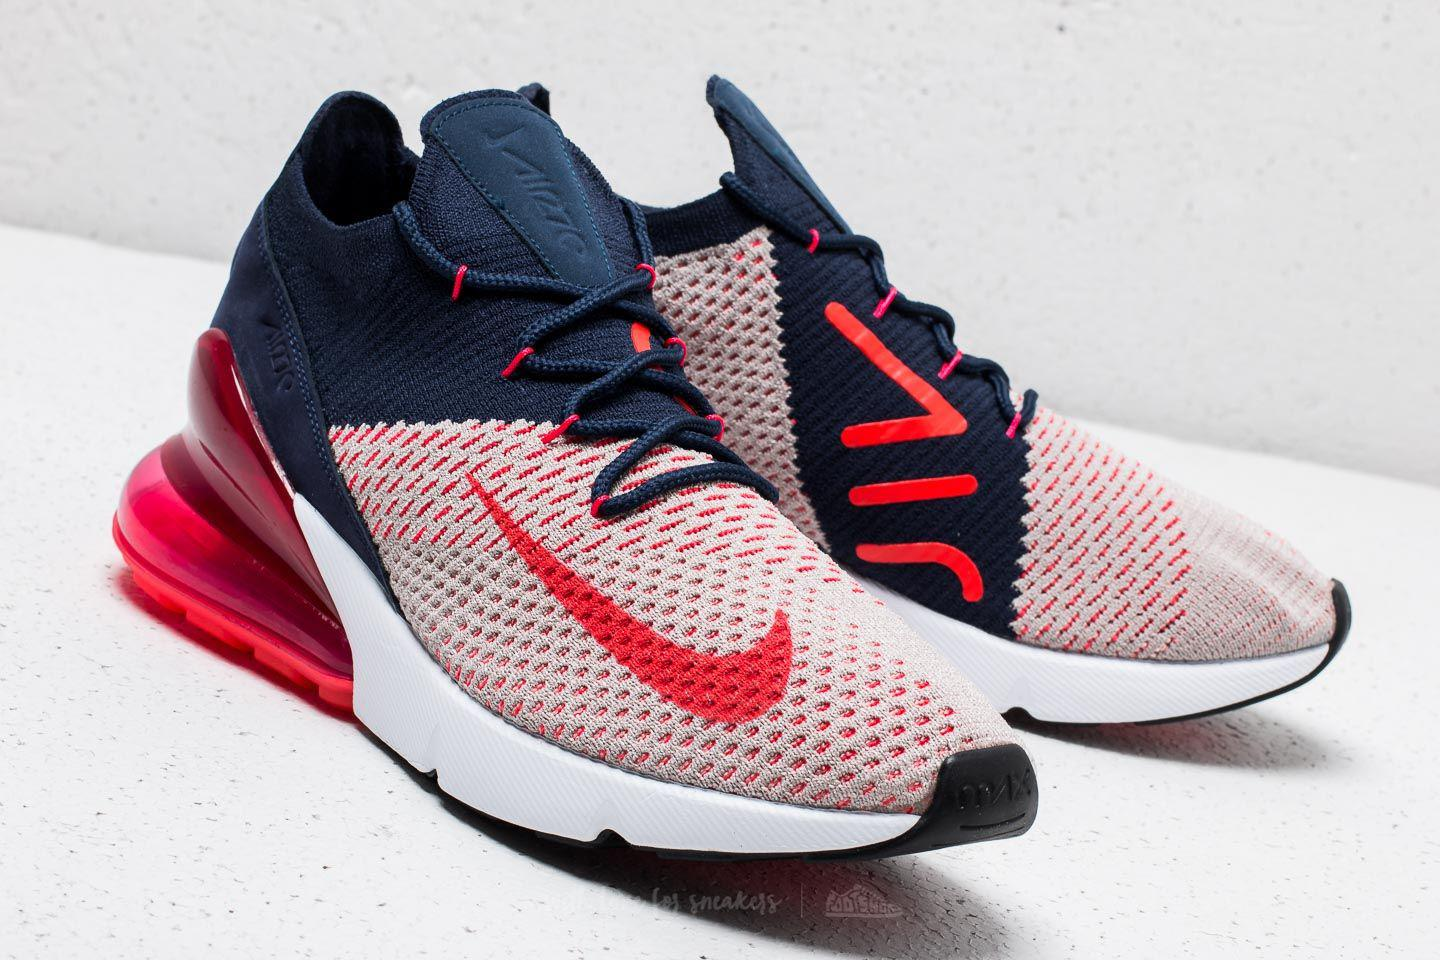 568de3add6177 nike air max 270 red orbit Lyst - Nike Wmns Air Max 270 Flyknit Moon  Particle